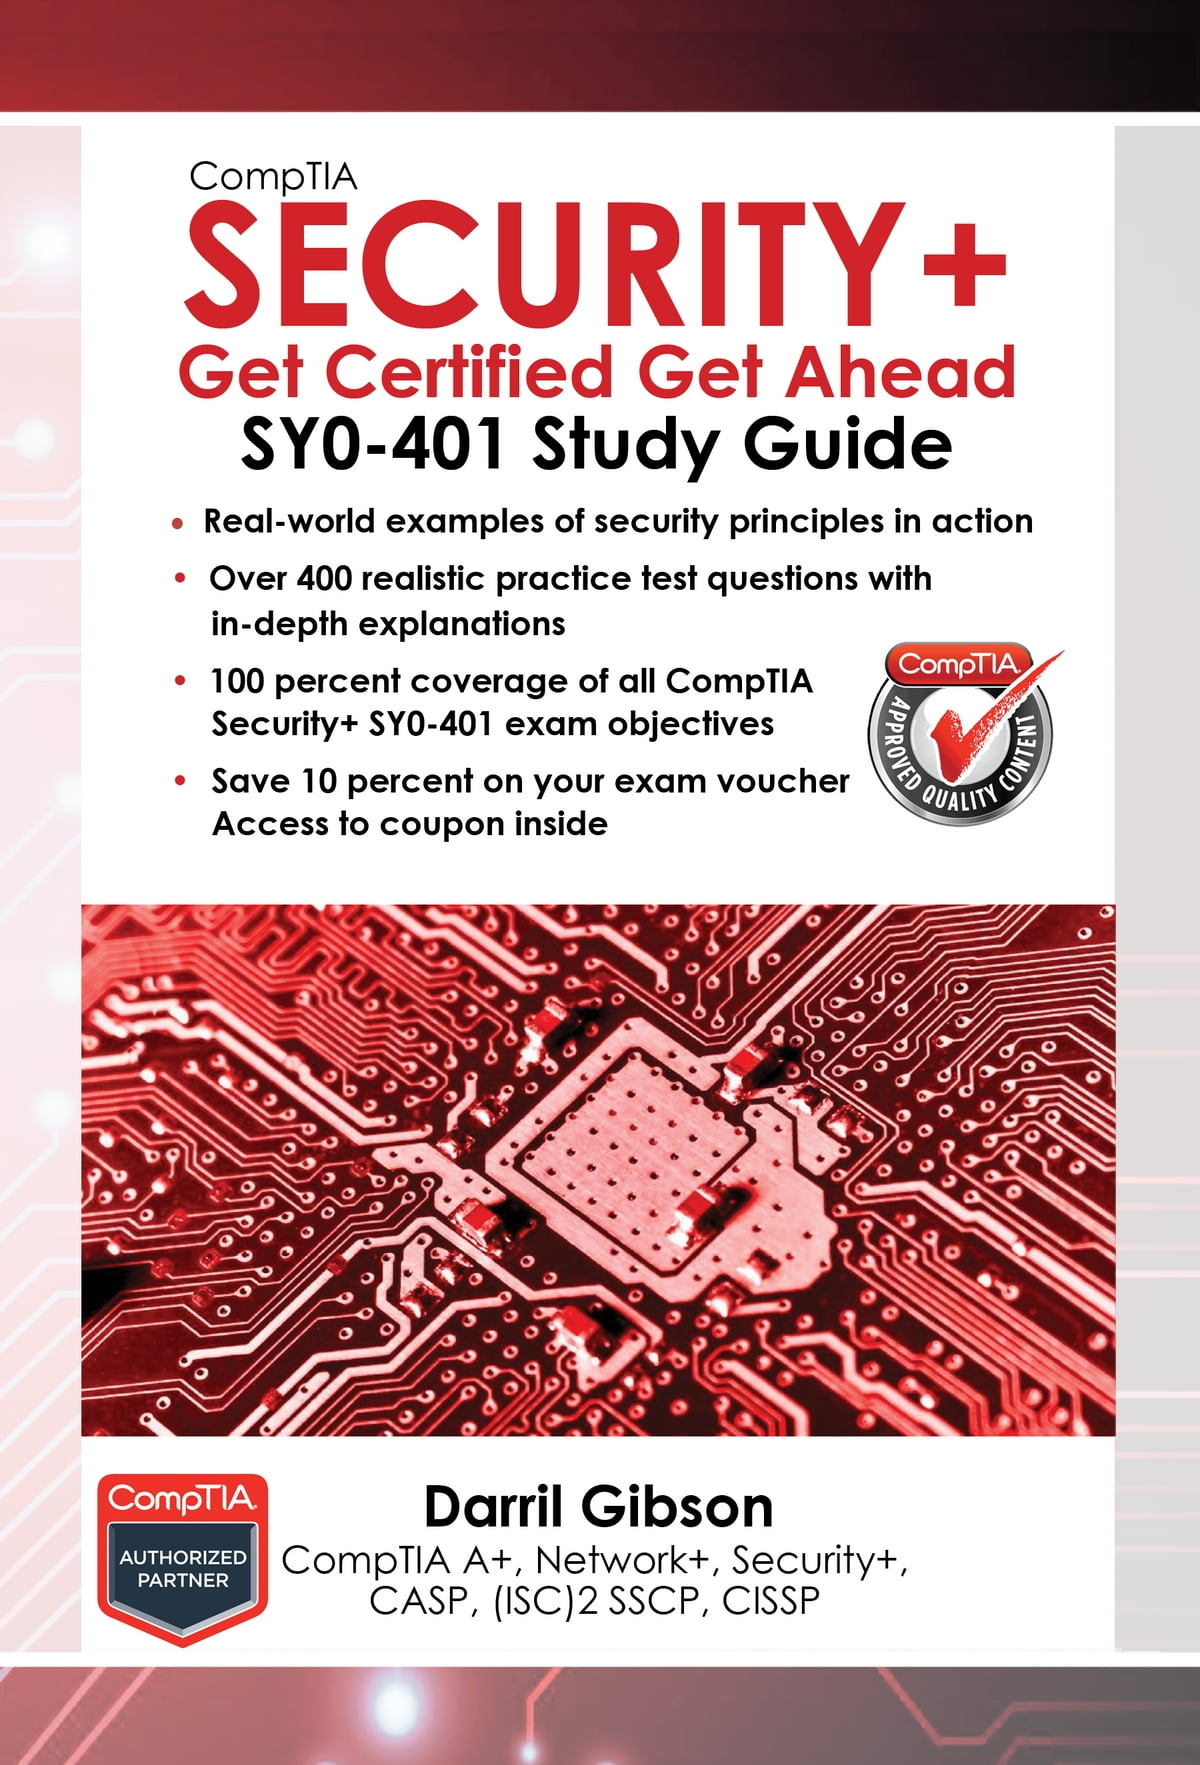 Comptia security get certified get ahead ebook by darril gibson comptia security get certified get ahead ebook by darril gibson 1230000467612 rakuten kobo xflitez Images